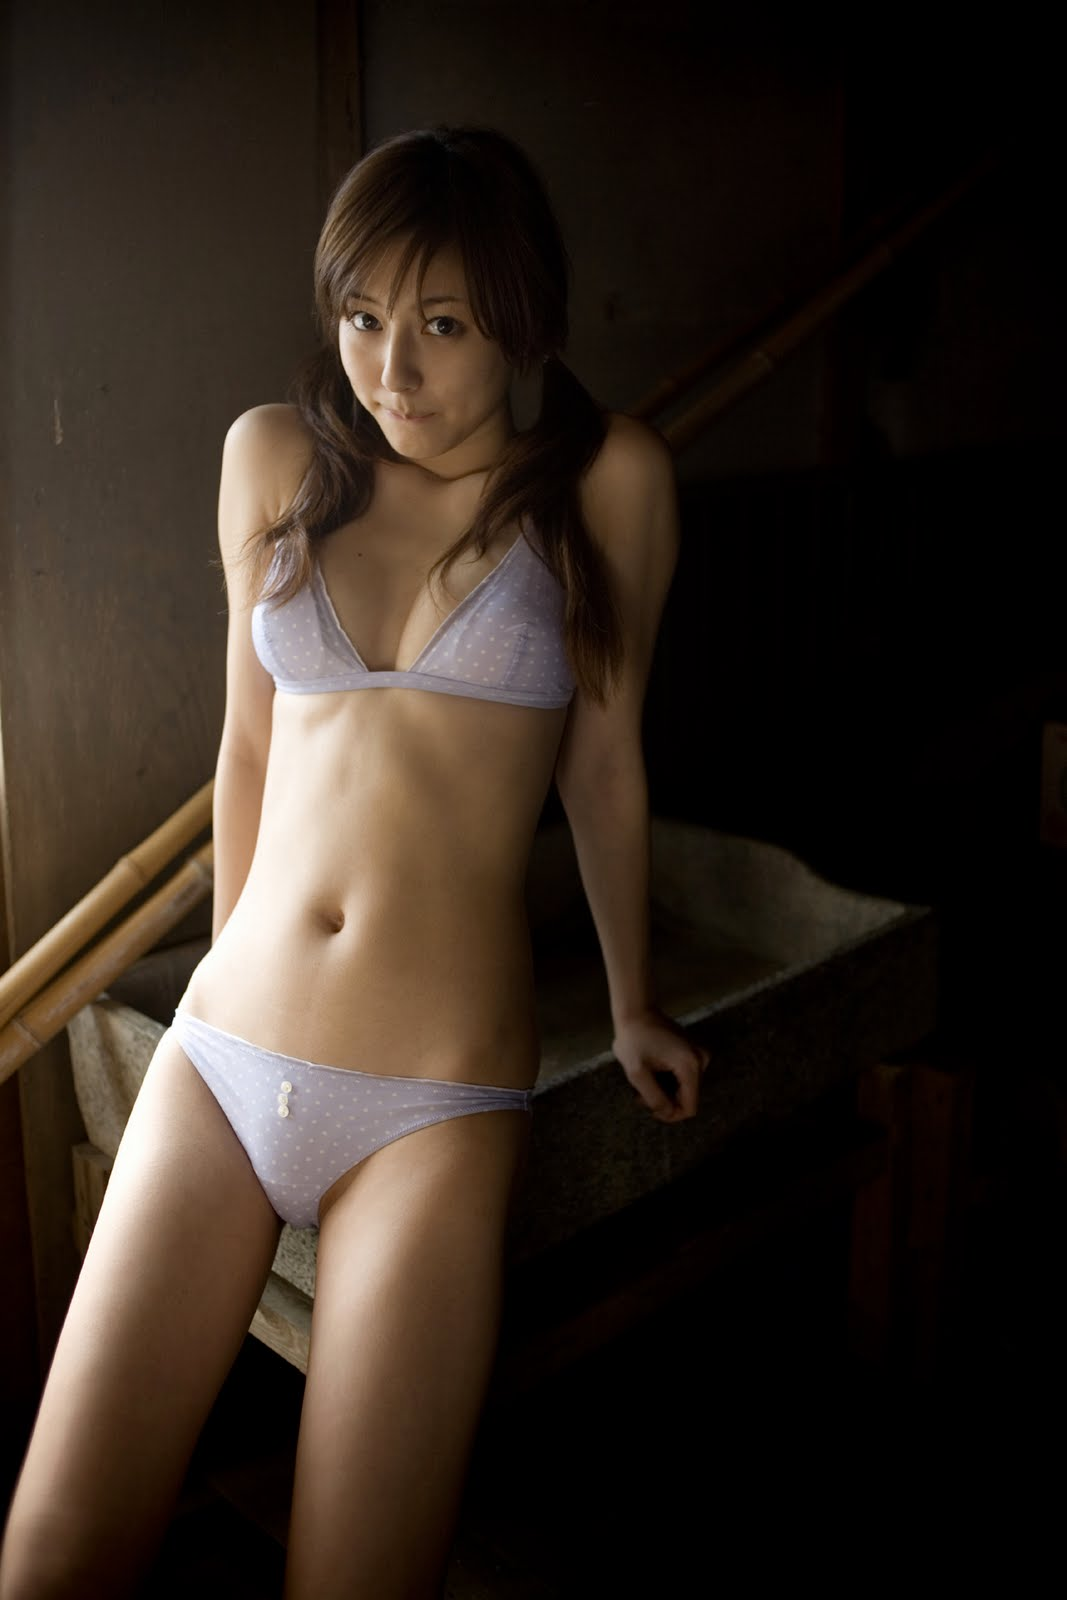 from Roger yumi sugimoto hot porn